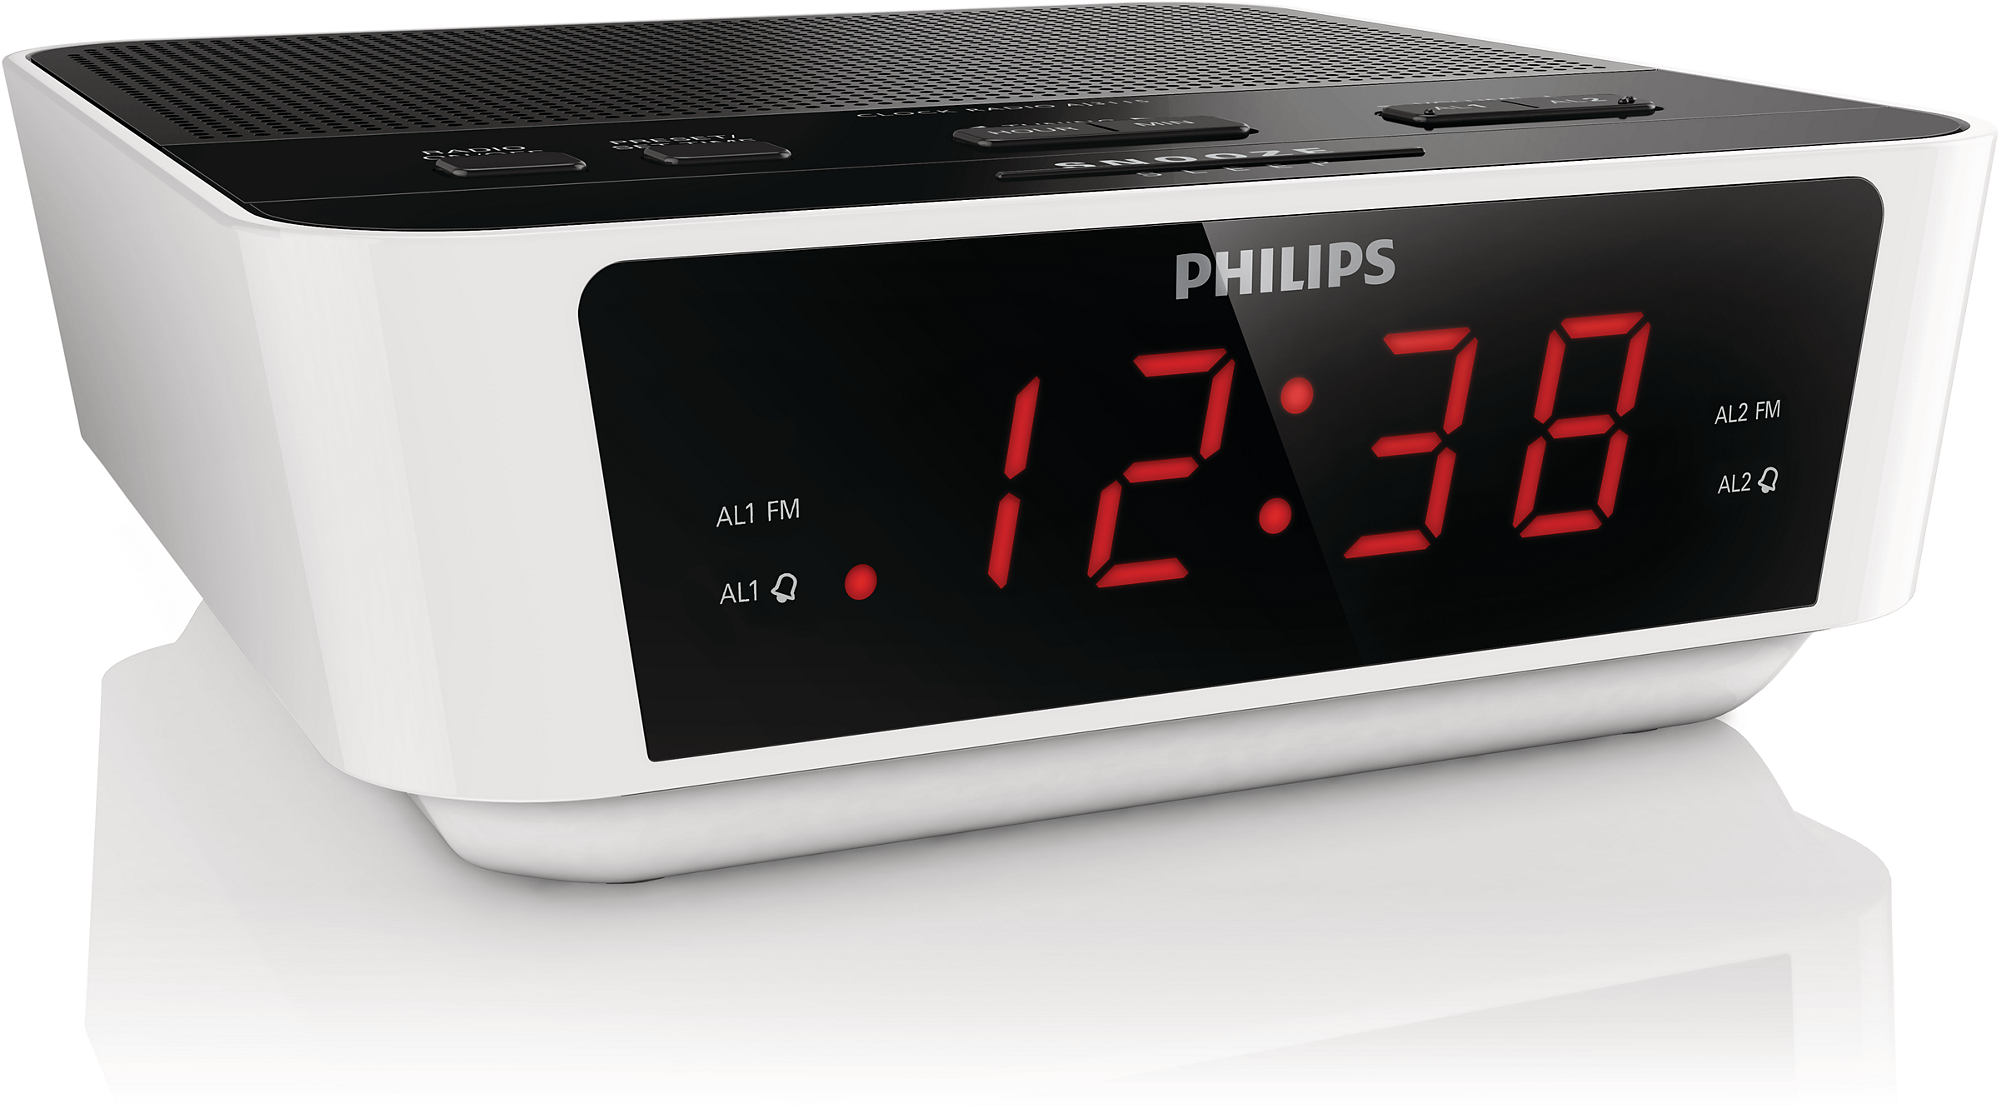 philips aj3115 05 digital tuning clock radio alarm white. Black Bedroom Furniture Sets. Home Design Ideas